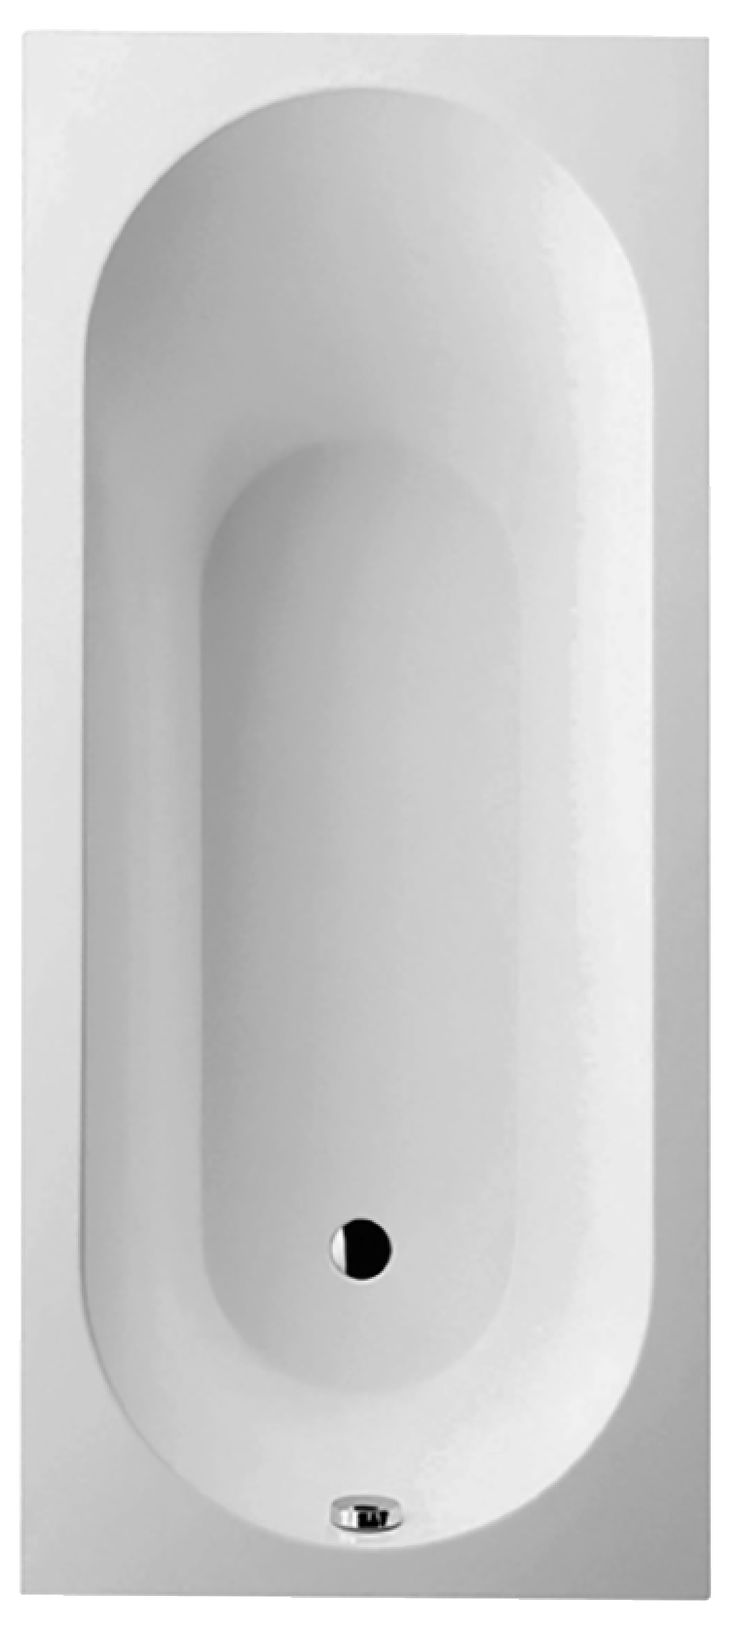 Villeroy Bath - Oberon Square 1700 x 750 BQDMBAT1700BE2VB Quaryl Bath comes in 750 or 700mm width Could be nice. LIKE the shape/feel